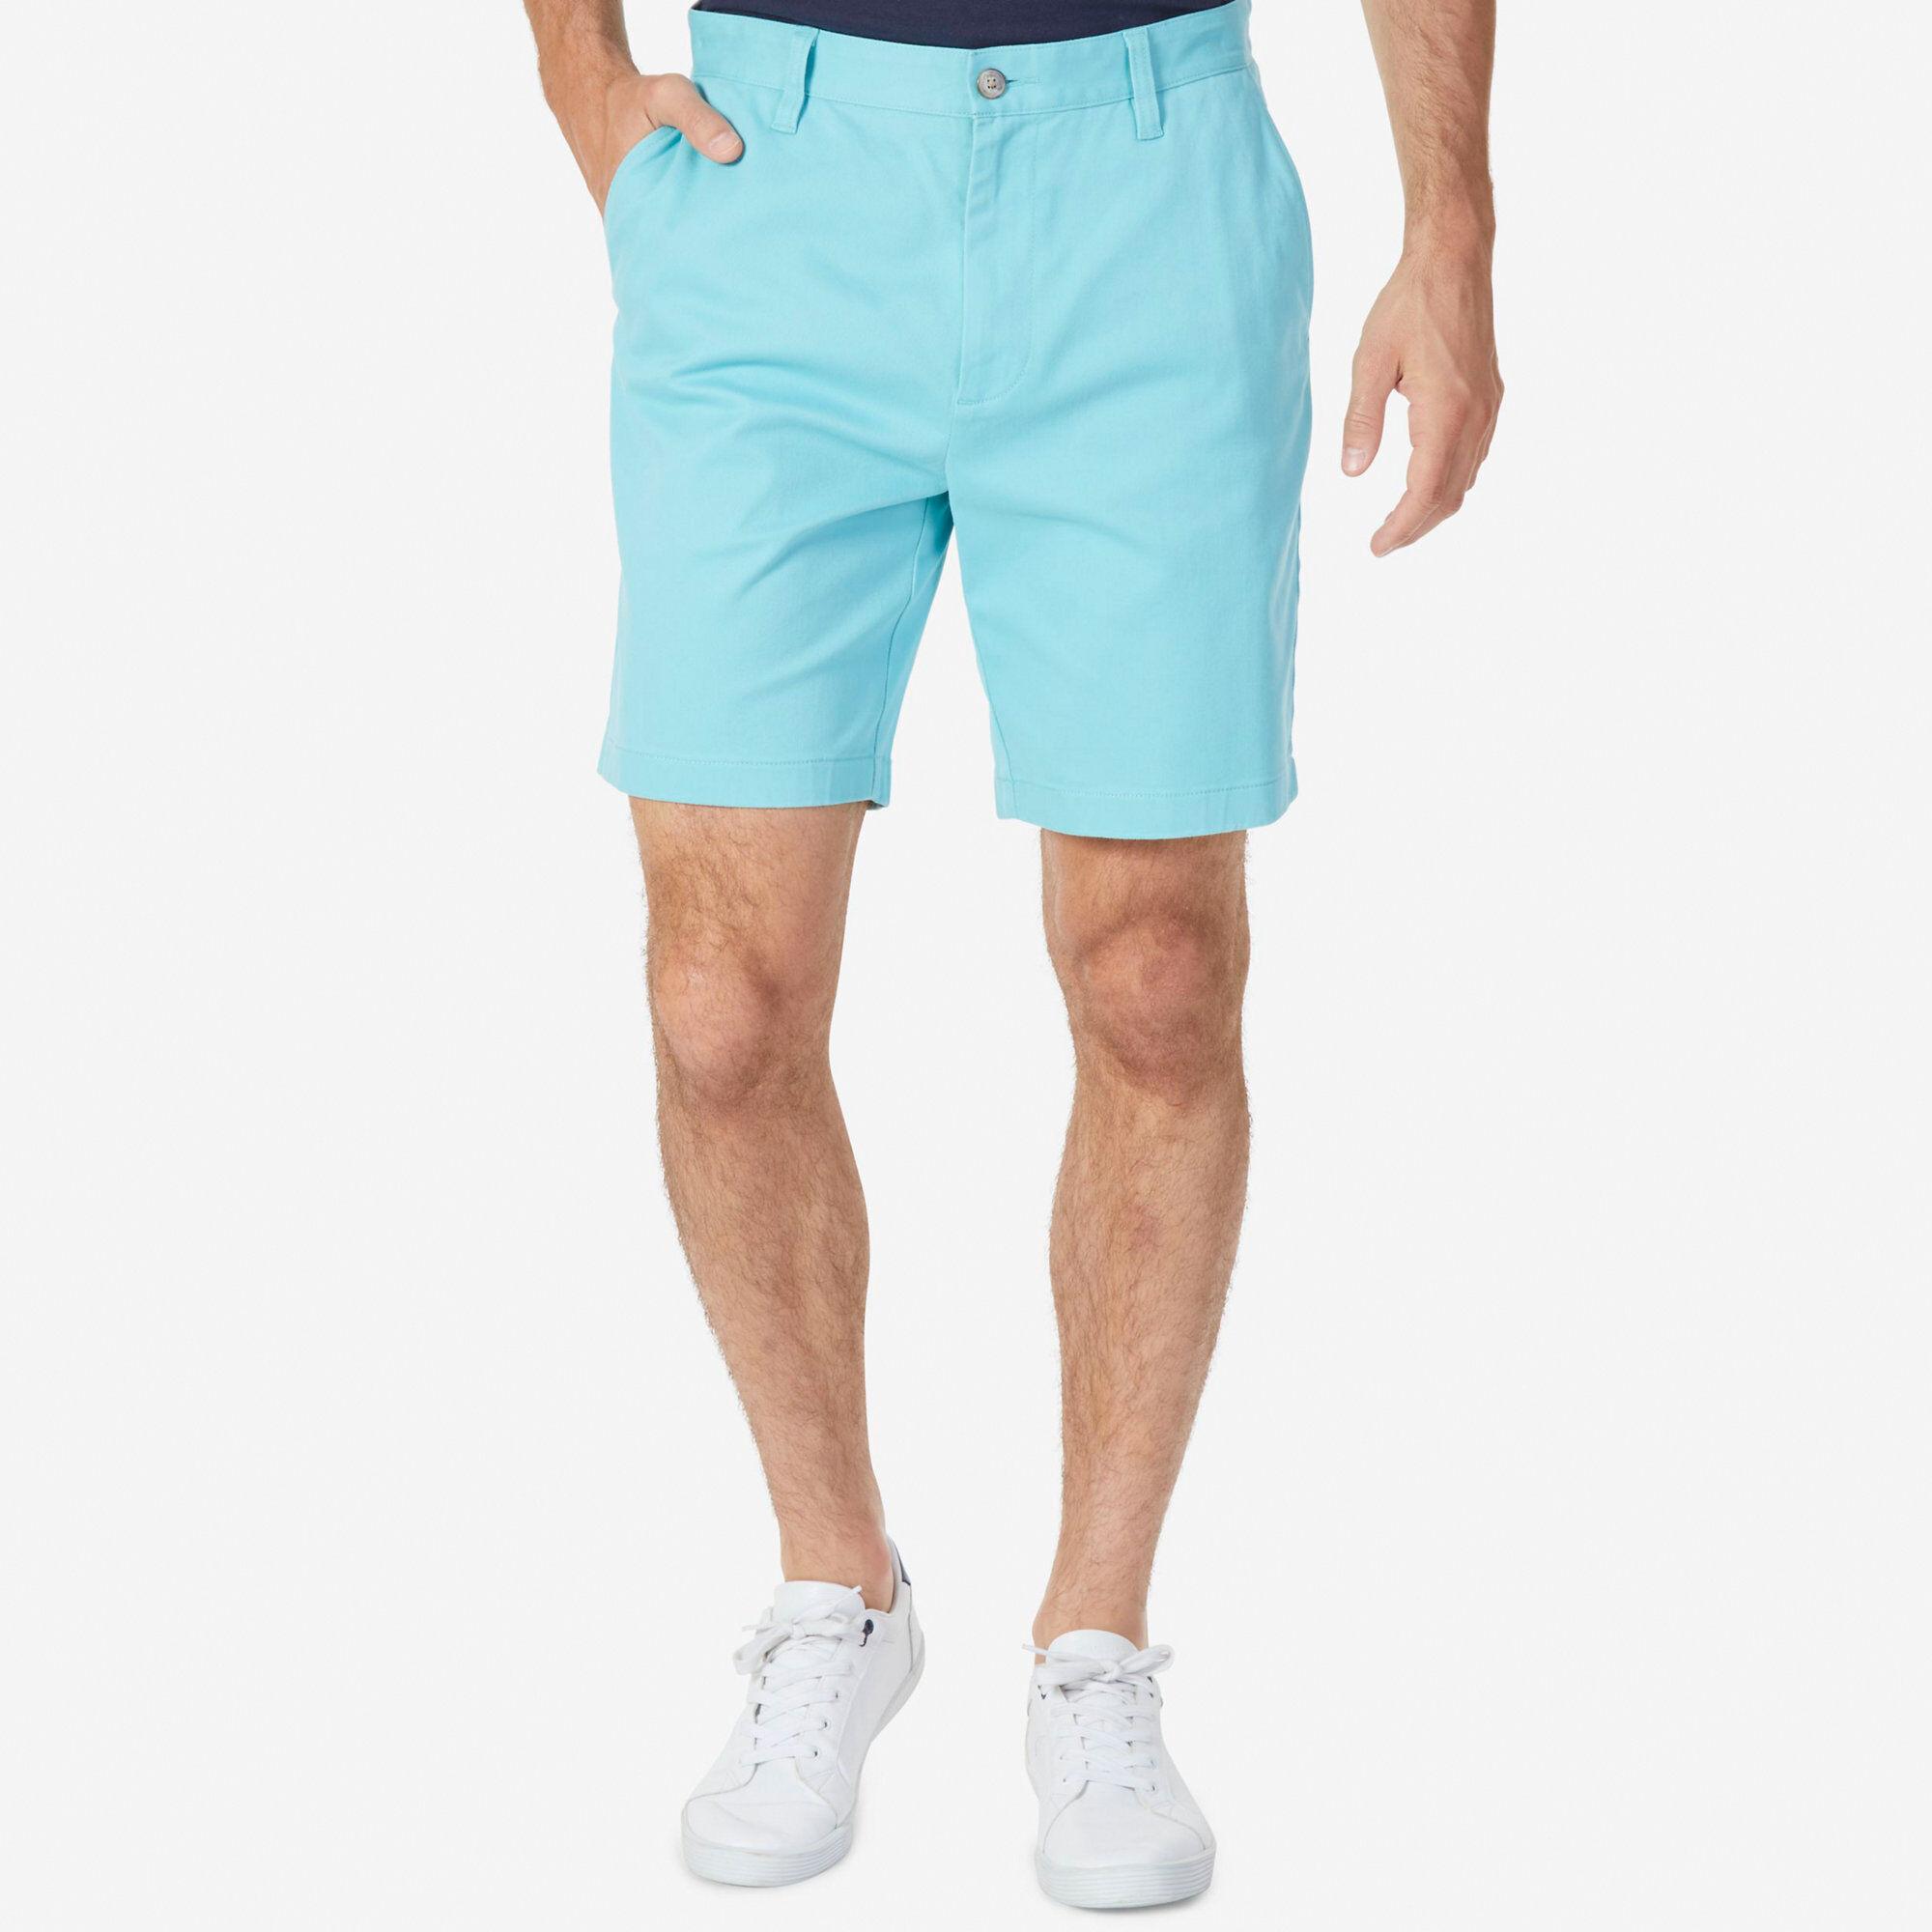 Nautica Mens Big & Tall Flat Front Classic Fit Deck Shorts